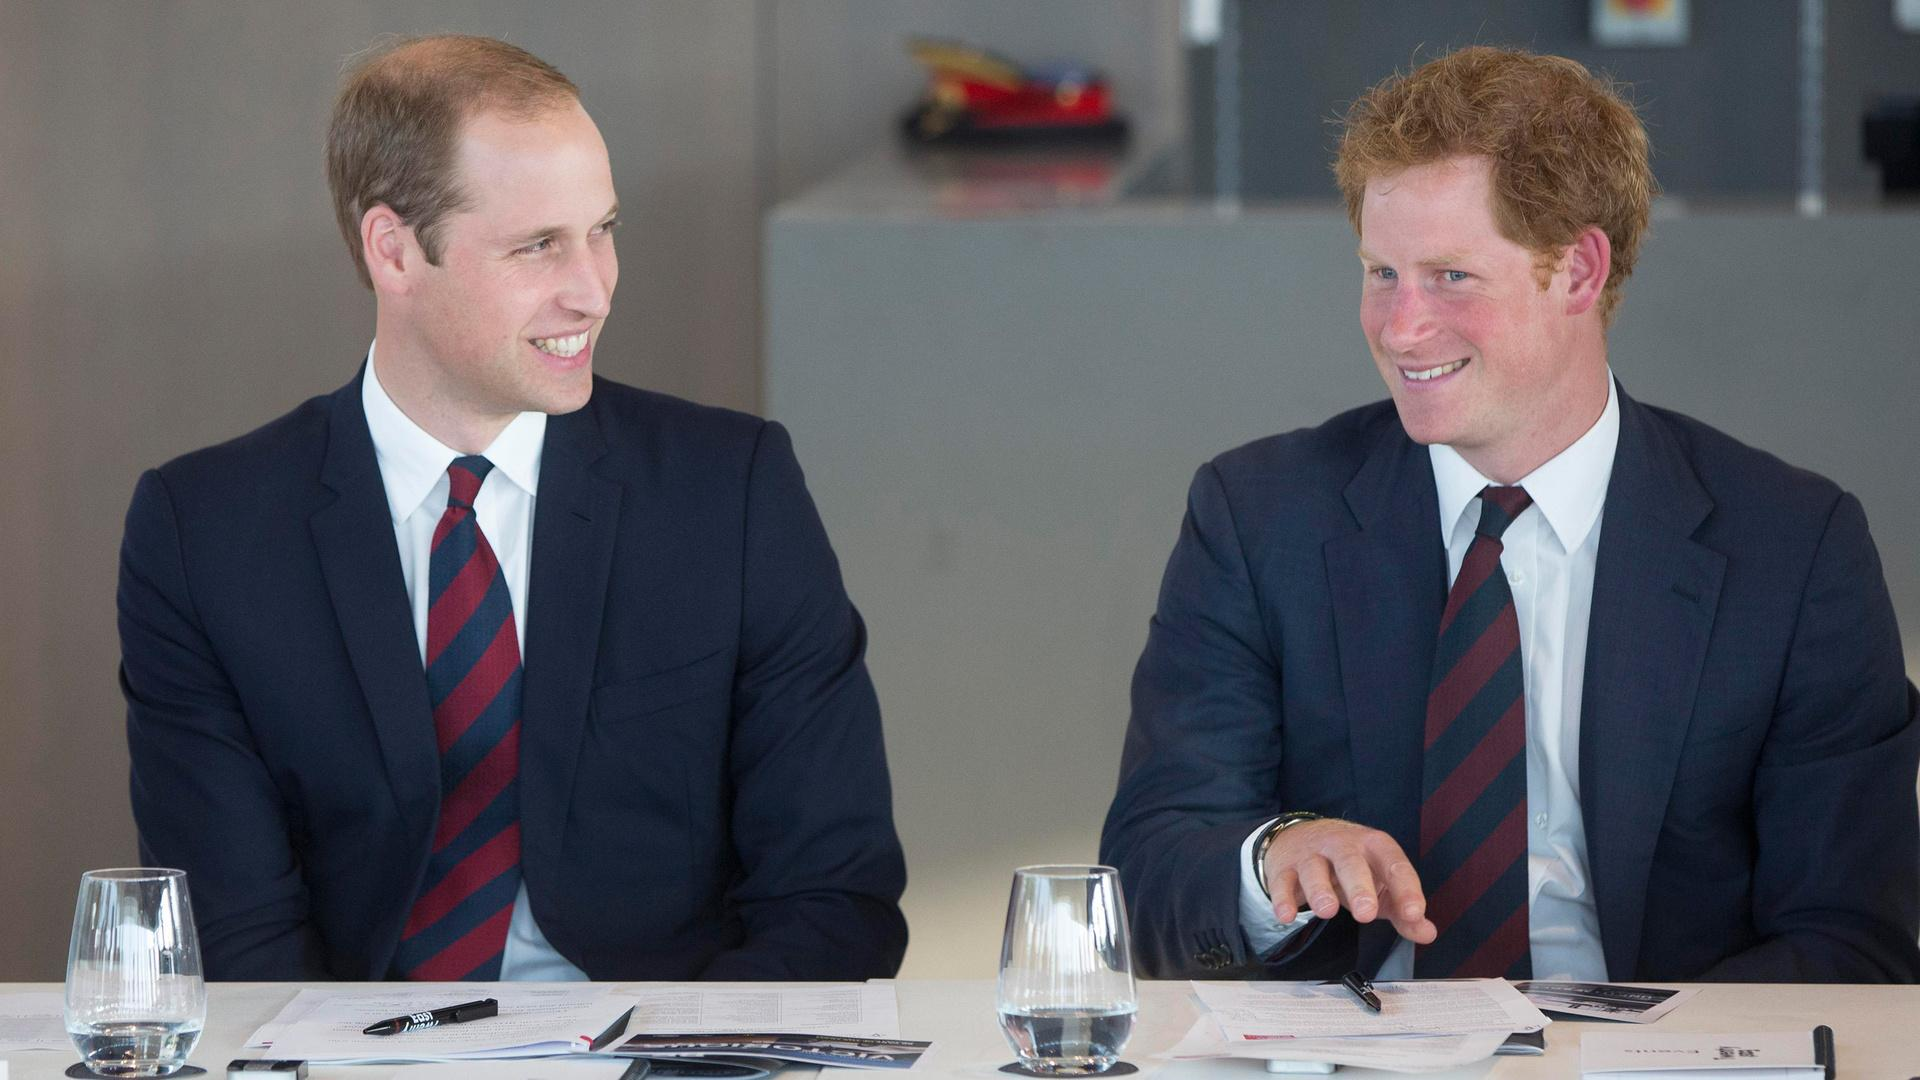 Prince Harry & Prince WIlliam's Cutest Brother Moments